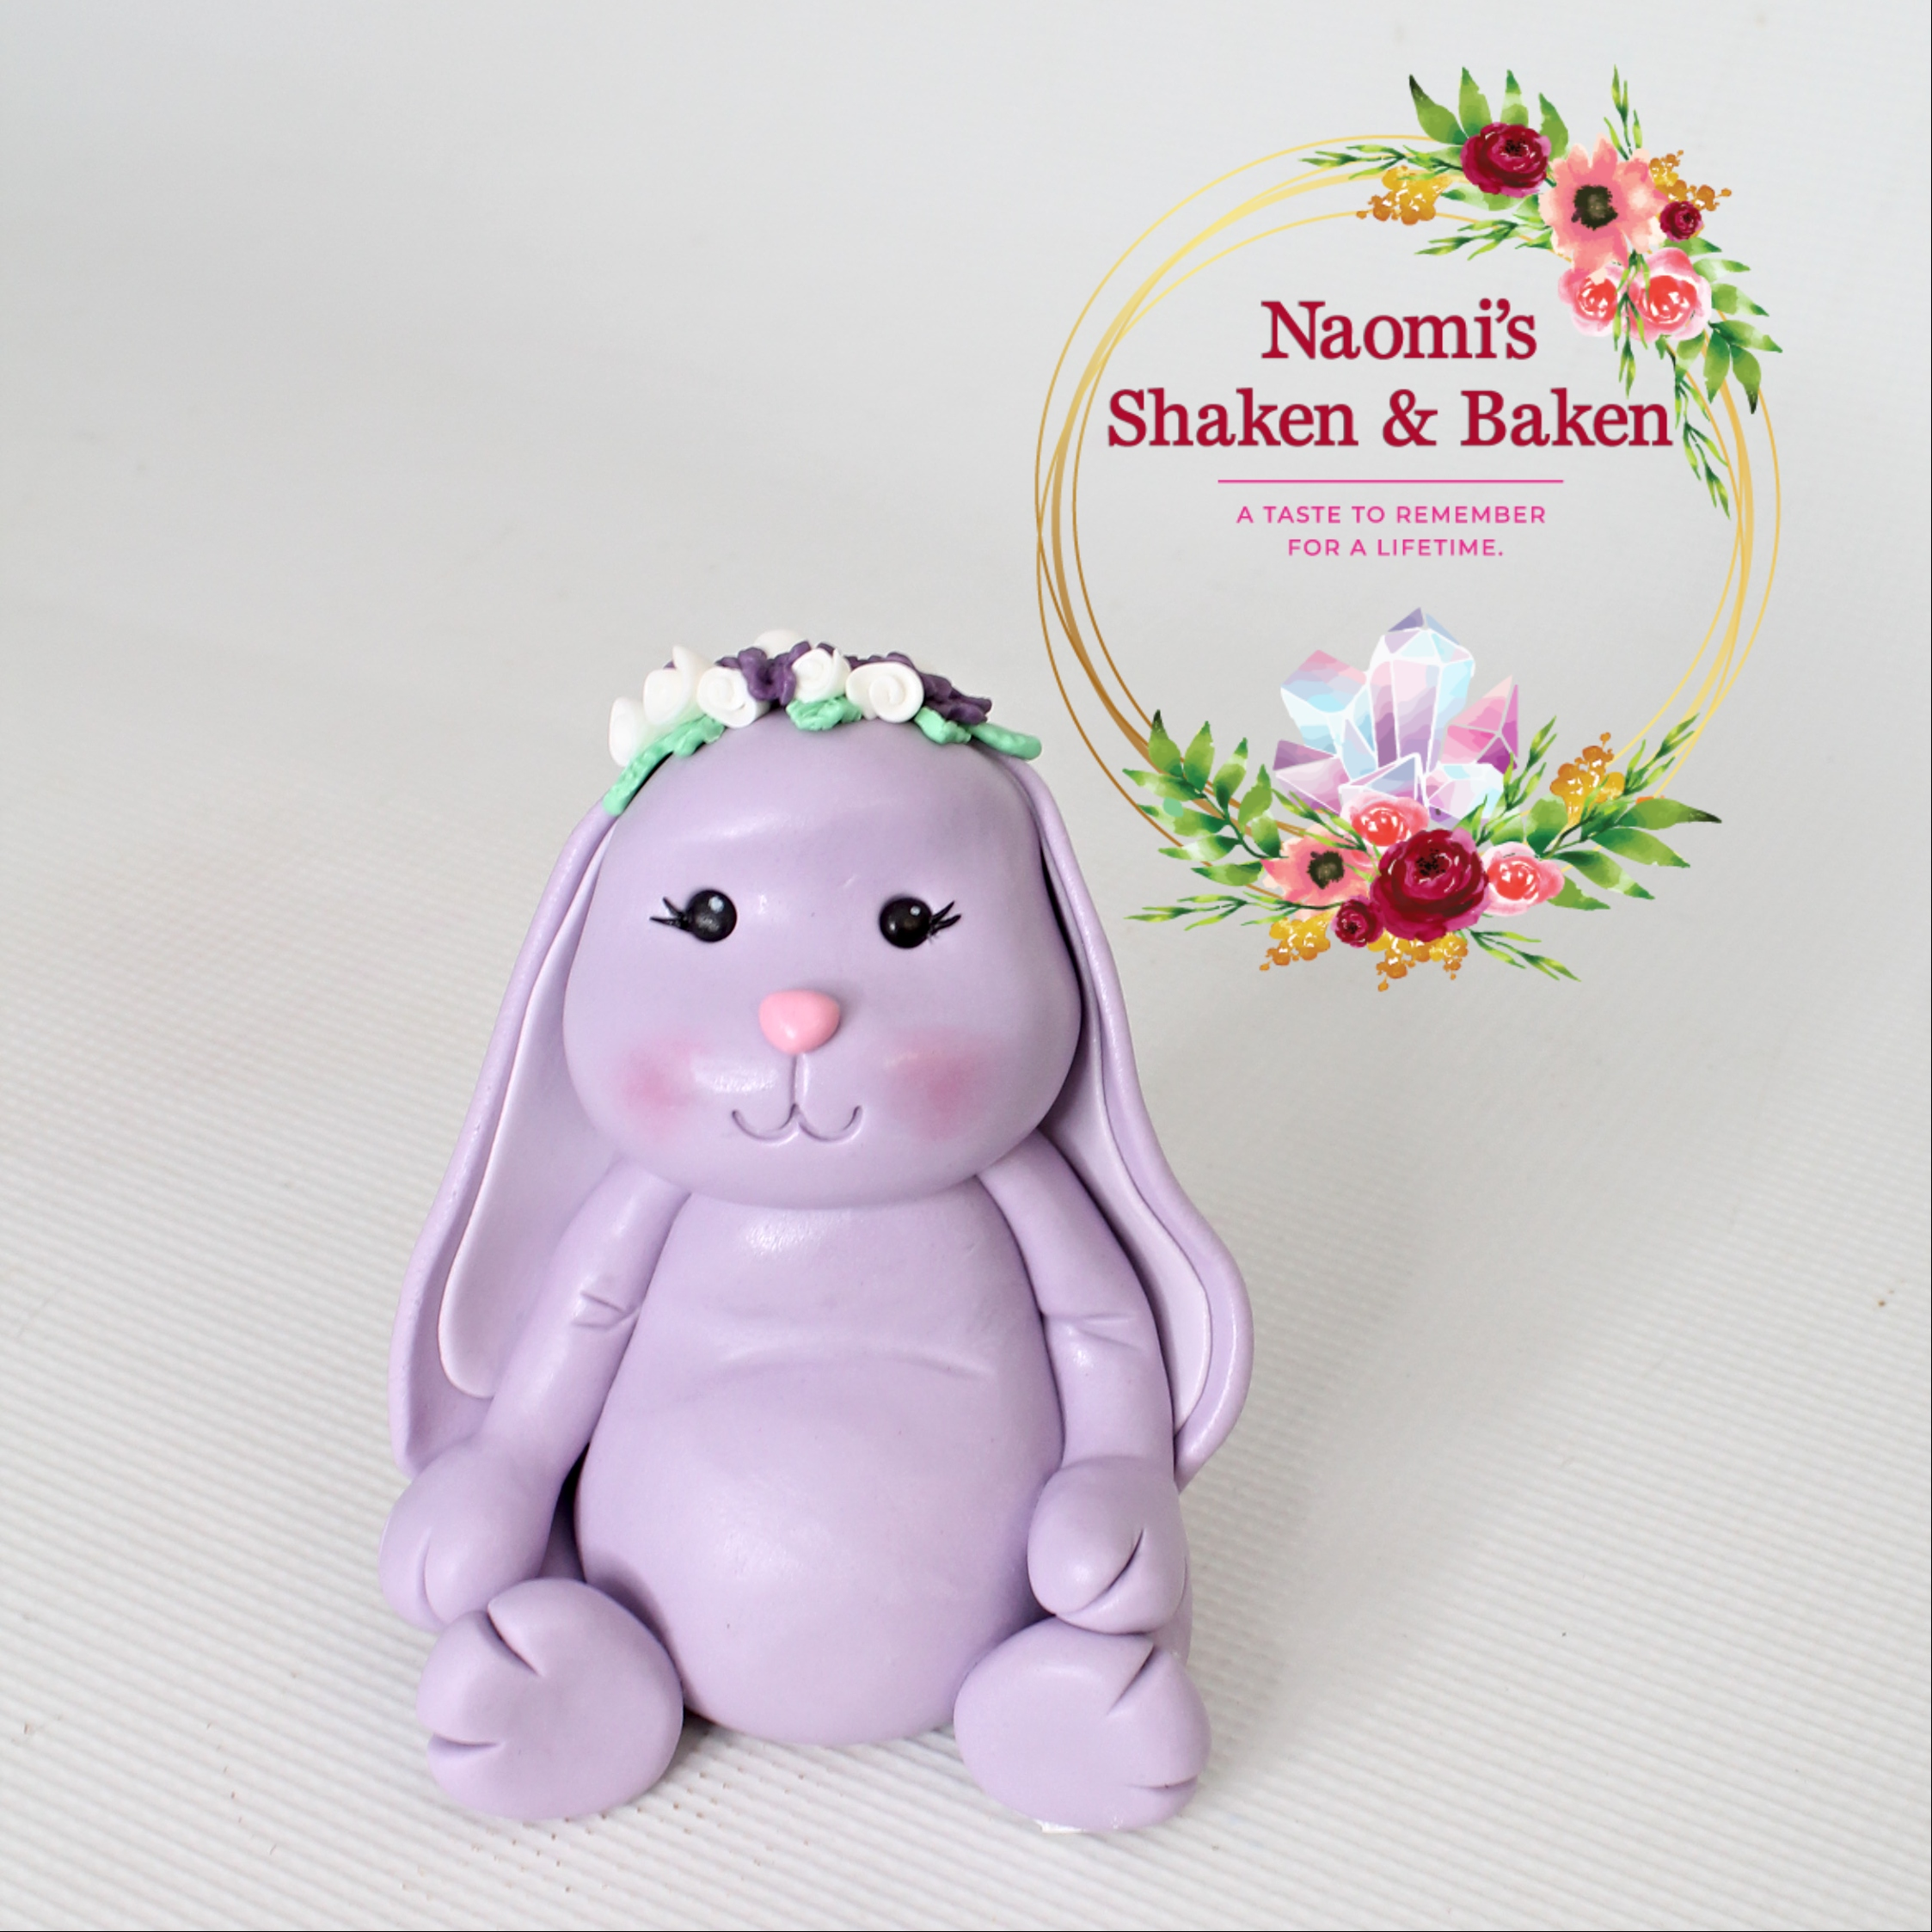 3D Handmade Edible Cute Bunny Cake Topper Caboolture